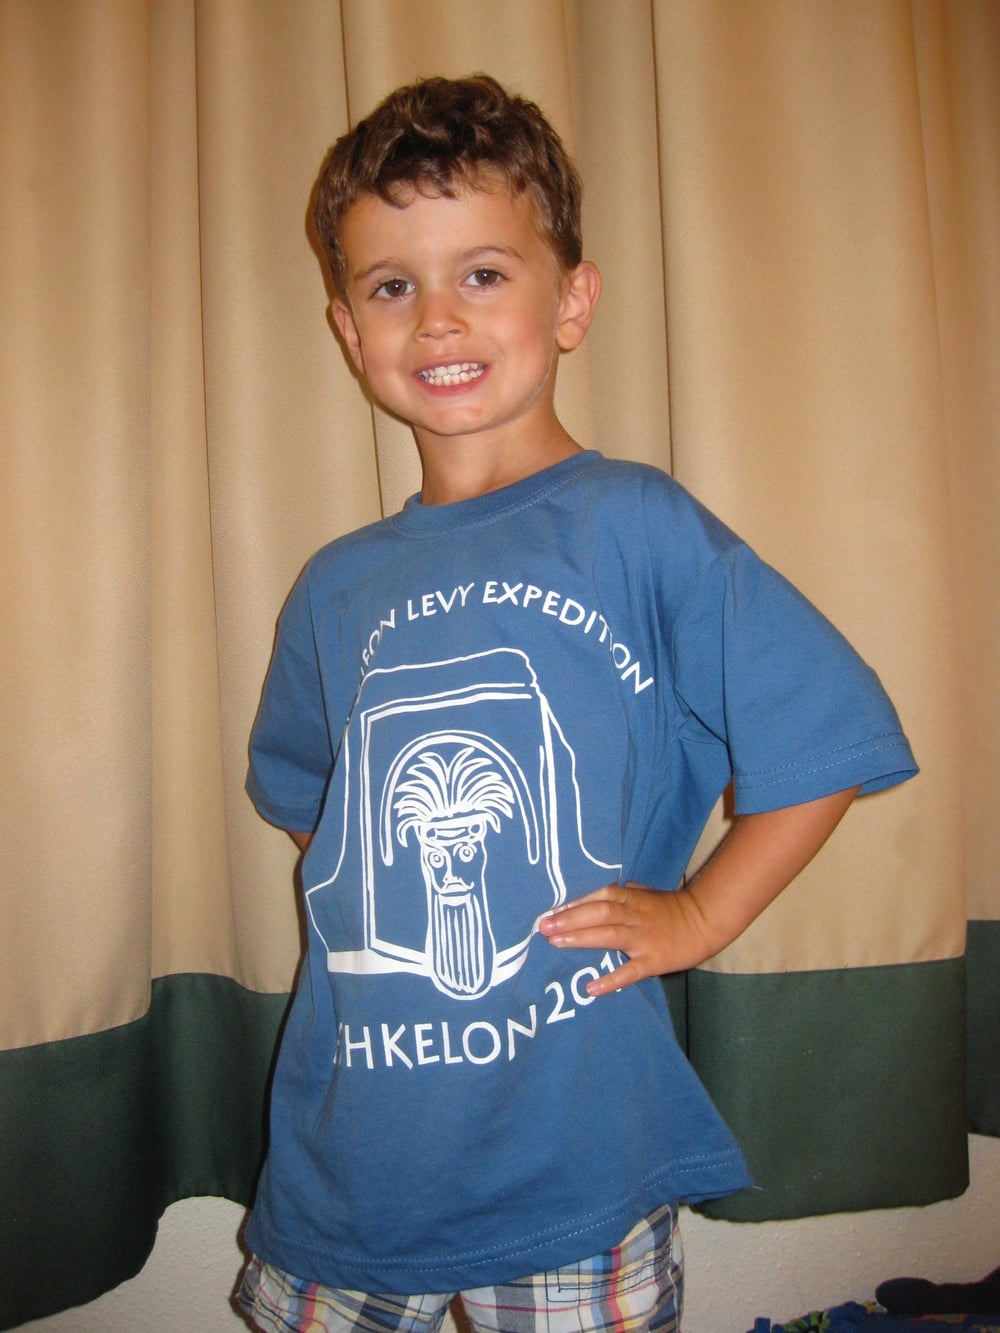 Ashkelon 2010 t-shirt